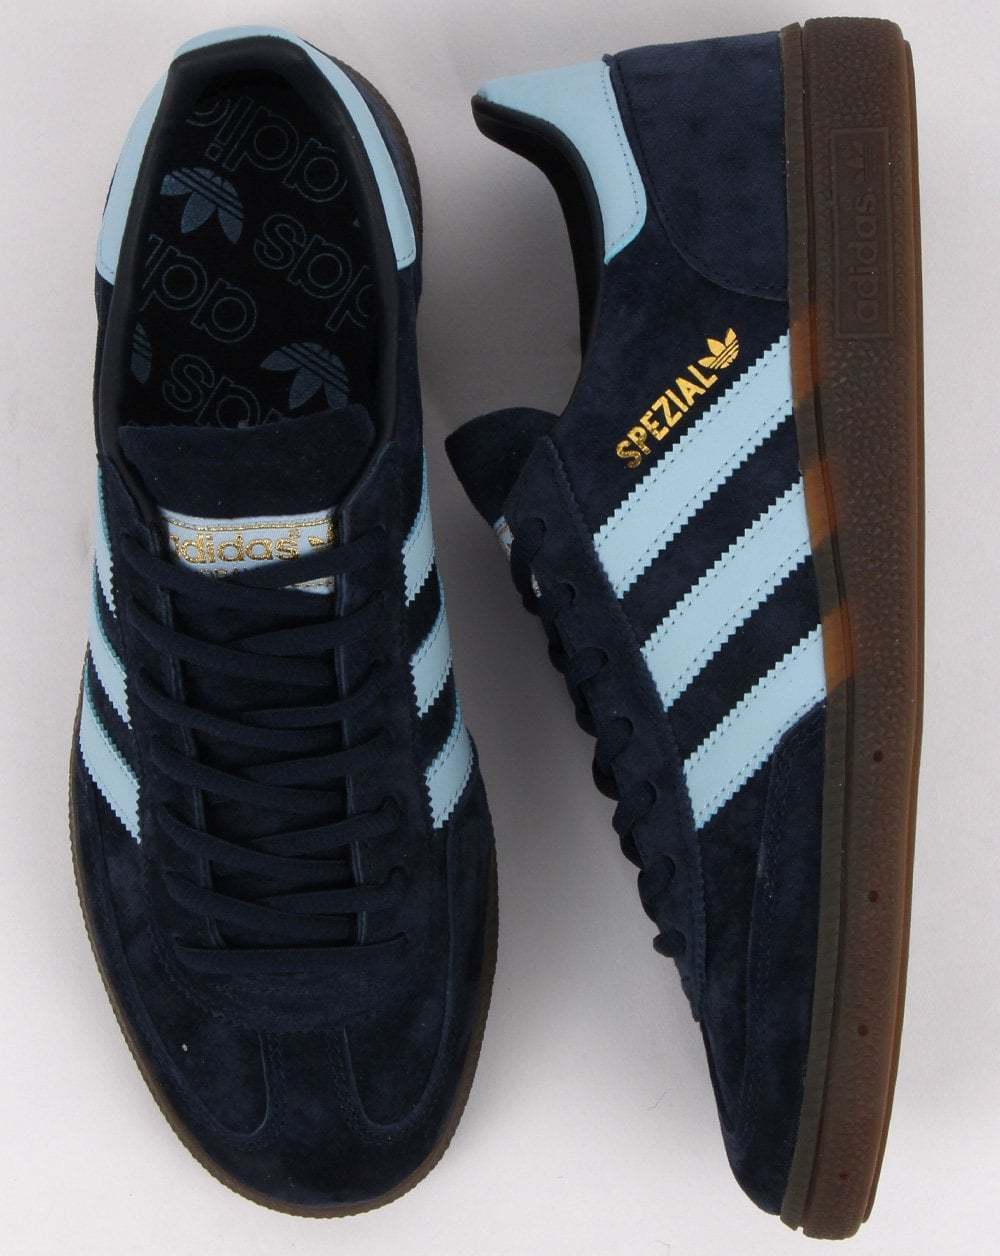 ADIDAS ORIGINALS TRAINERS Handball Spezial Navy Trainer